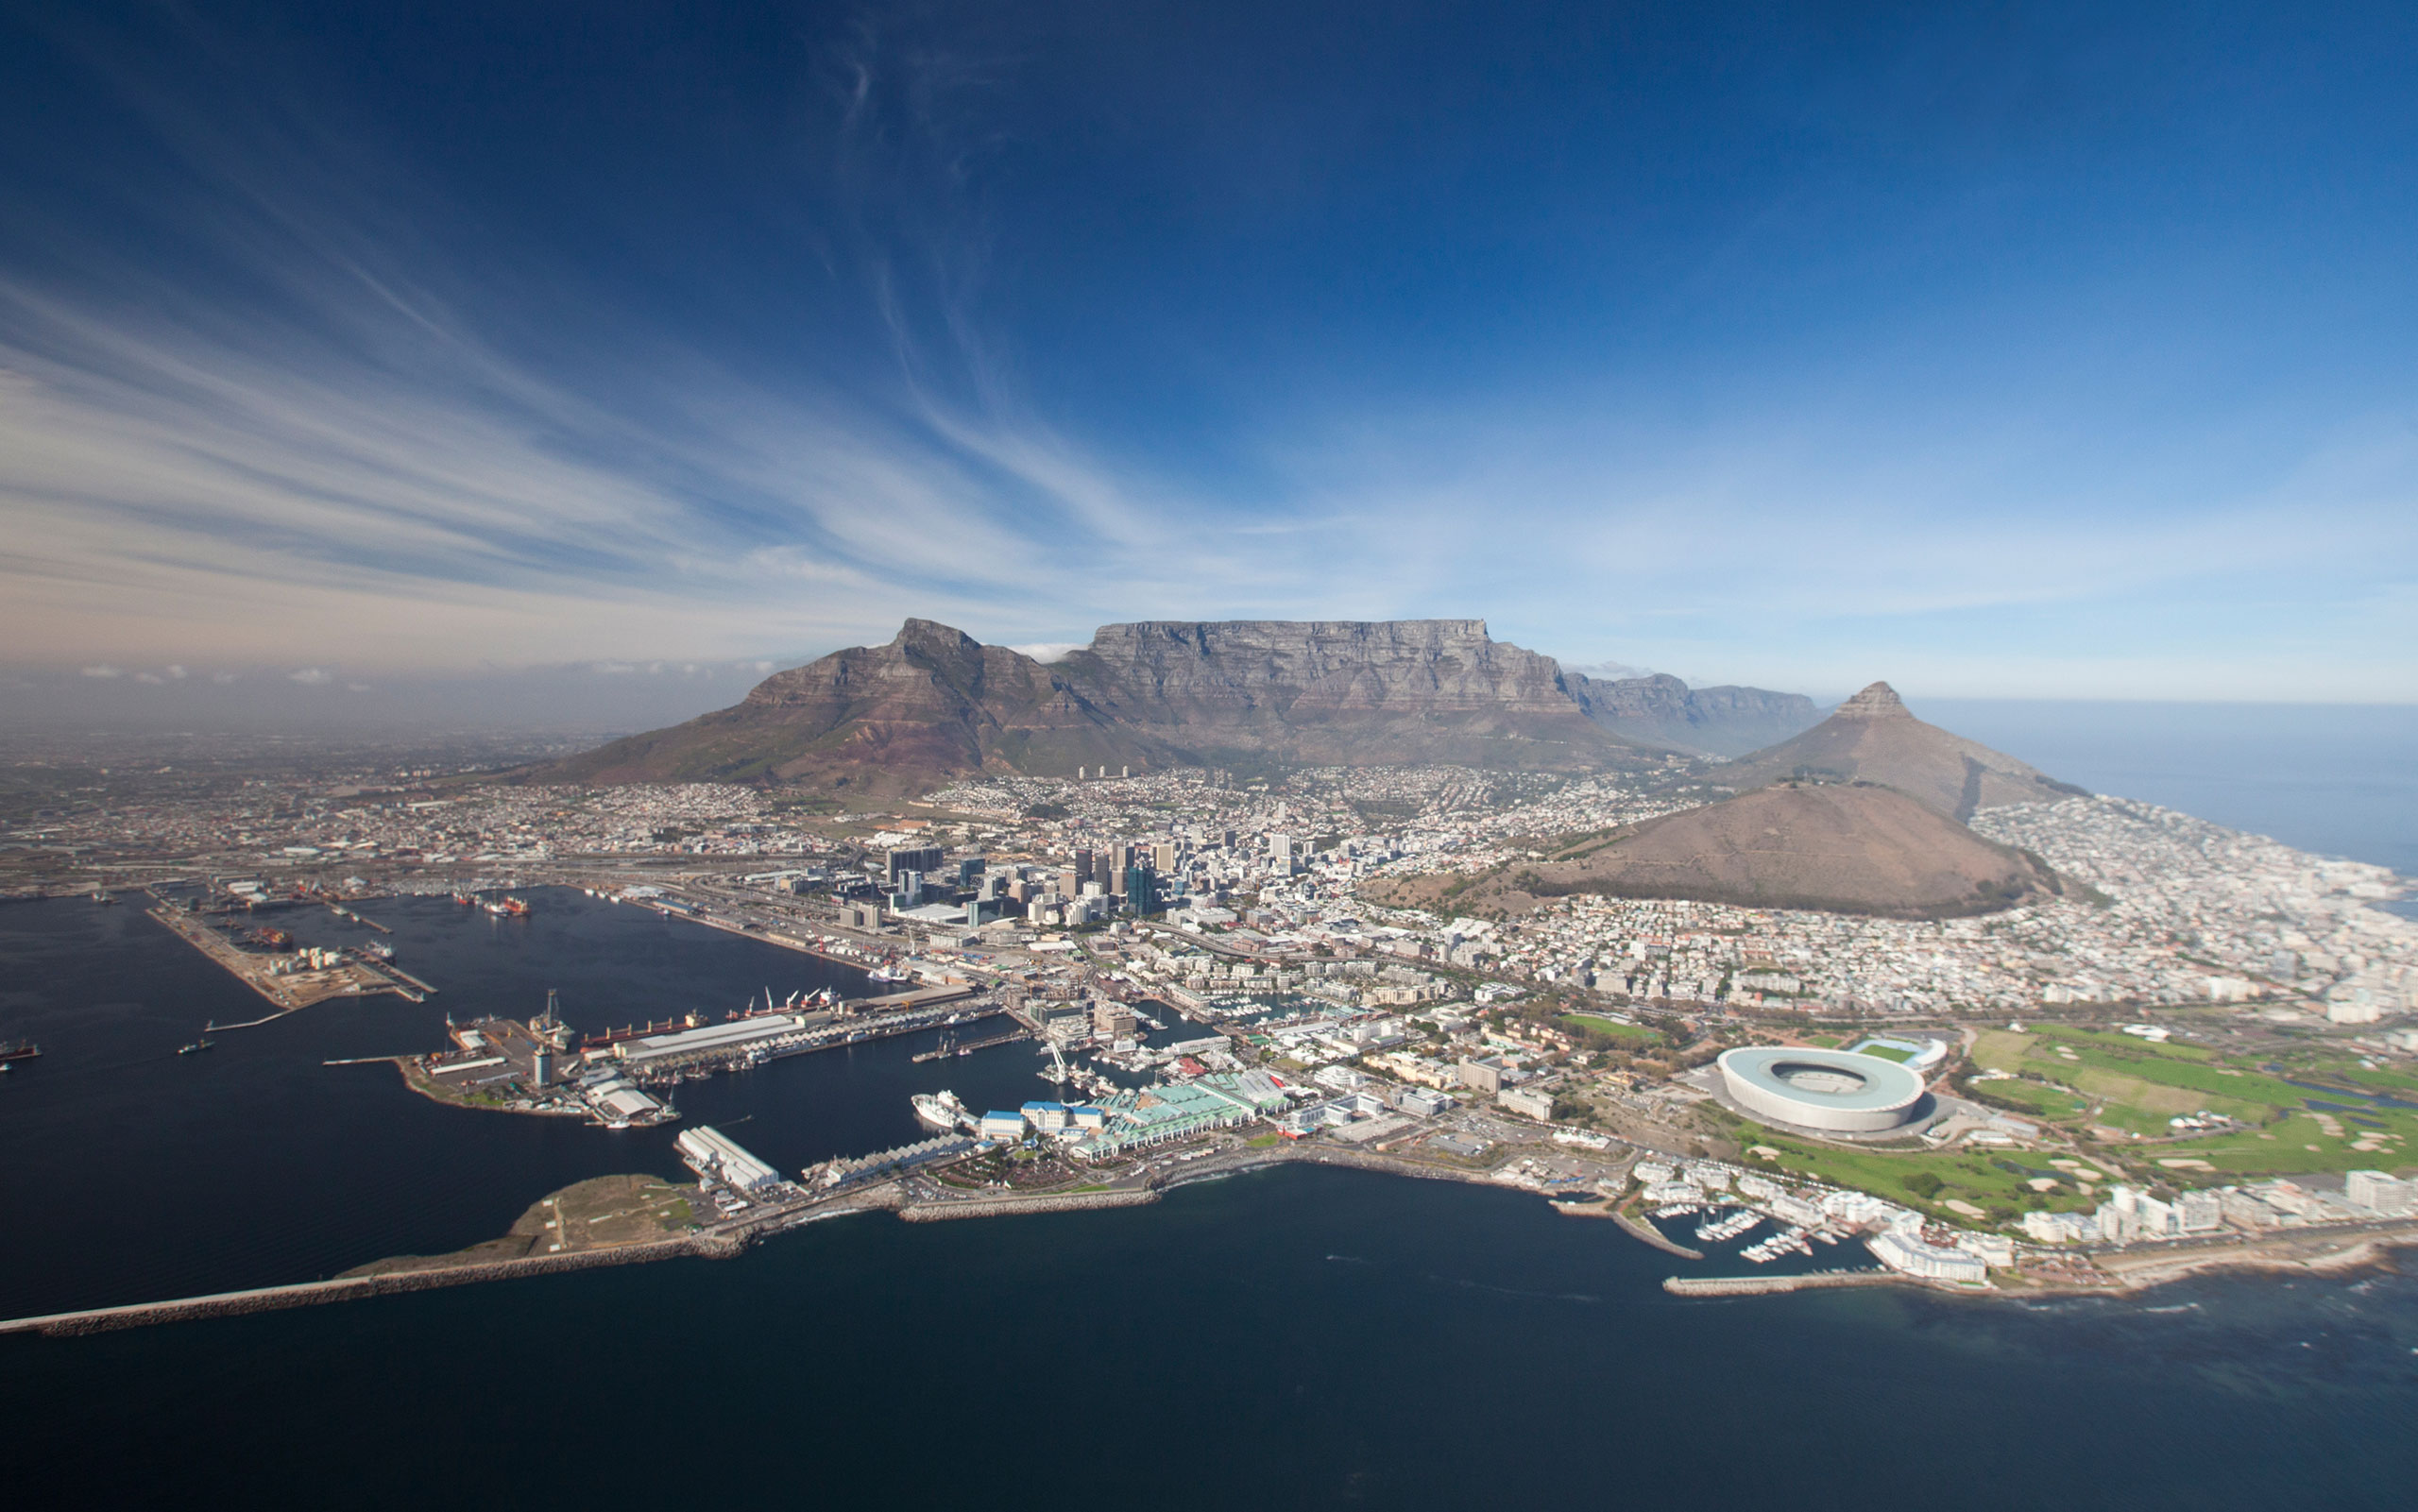 Cape Town Tourism Aerial view sudafrica ciudad del cabo enkosi africa